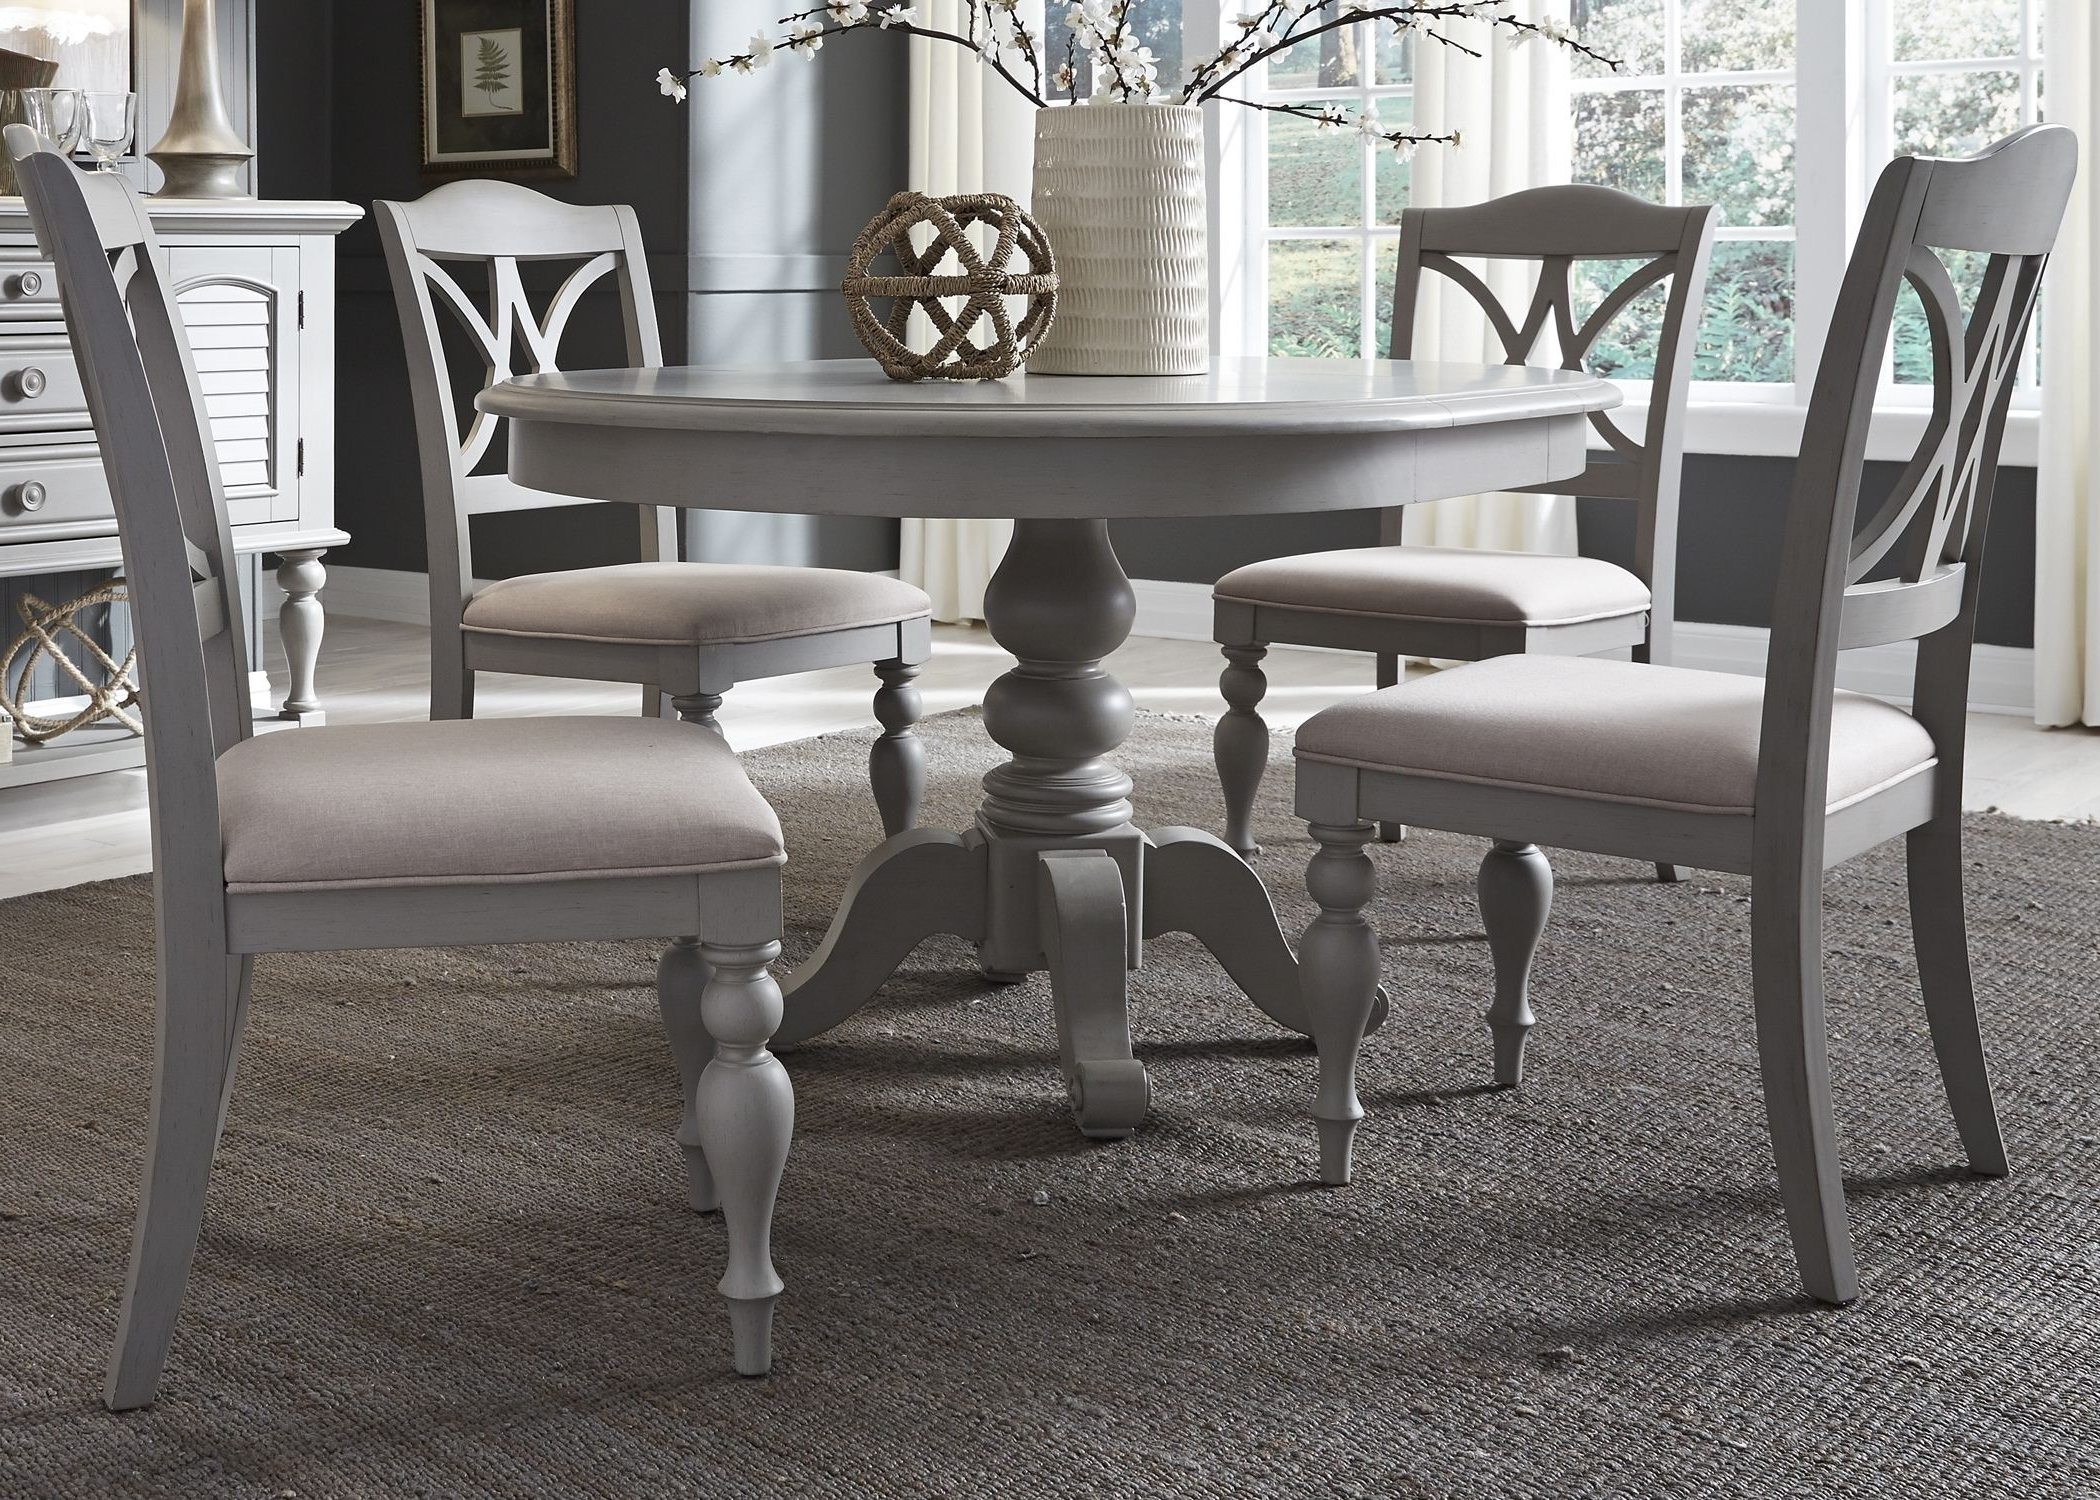 Famous White Round Extendable Dining Tables Inside Liberty Summer House Dove Grey Round Extendable Dining Table (View 21 of 25)